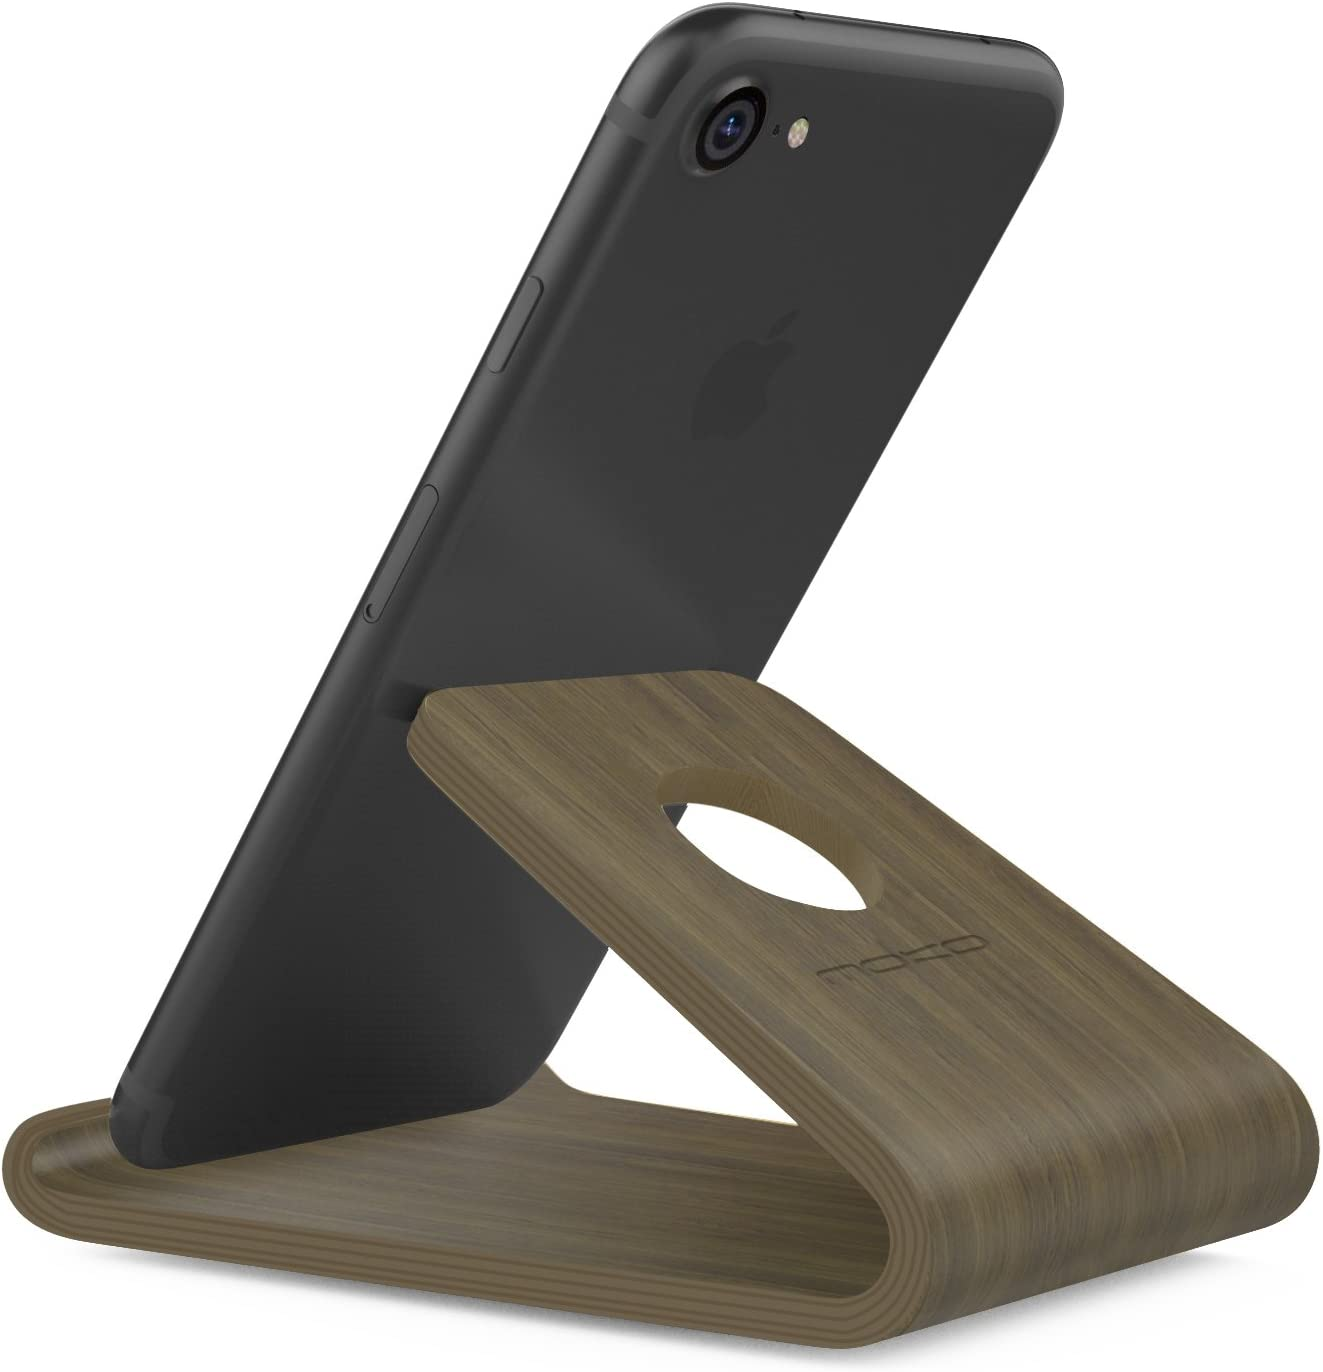 "MoKo Wooden Cell Phone Stand, Smartphone Desktop Holder, Mobile Phone Holder Cradle, Fits with iPhone 11 Pro Max/11 Pro/11, iPhone Xs Max XR X, iPhone SE 2020, Galaxy S20 6.2"", Walnut Color"